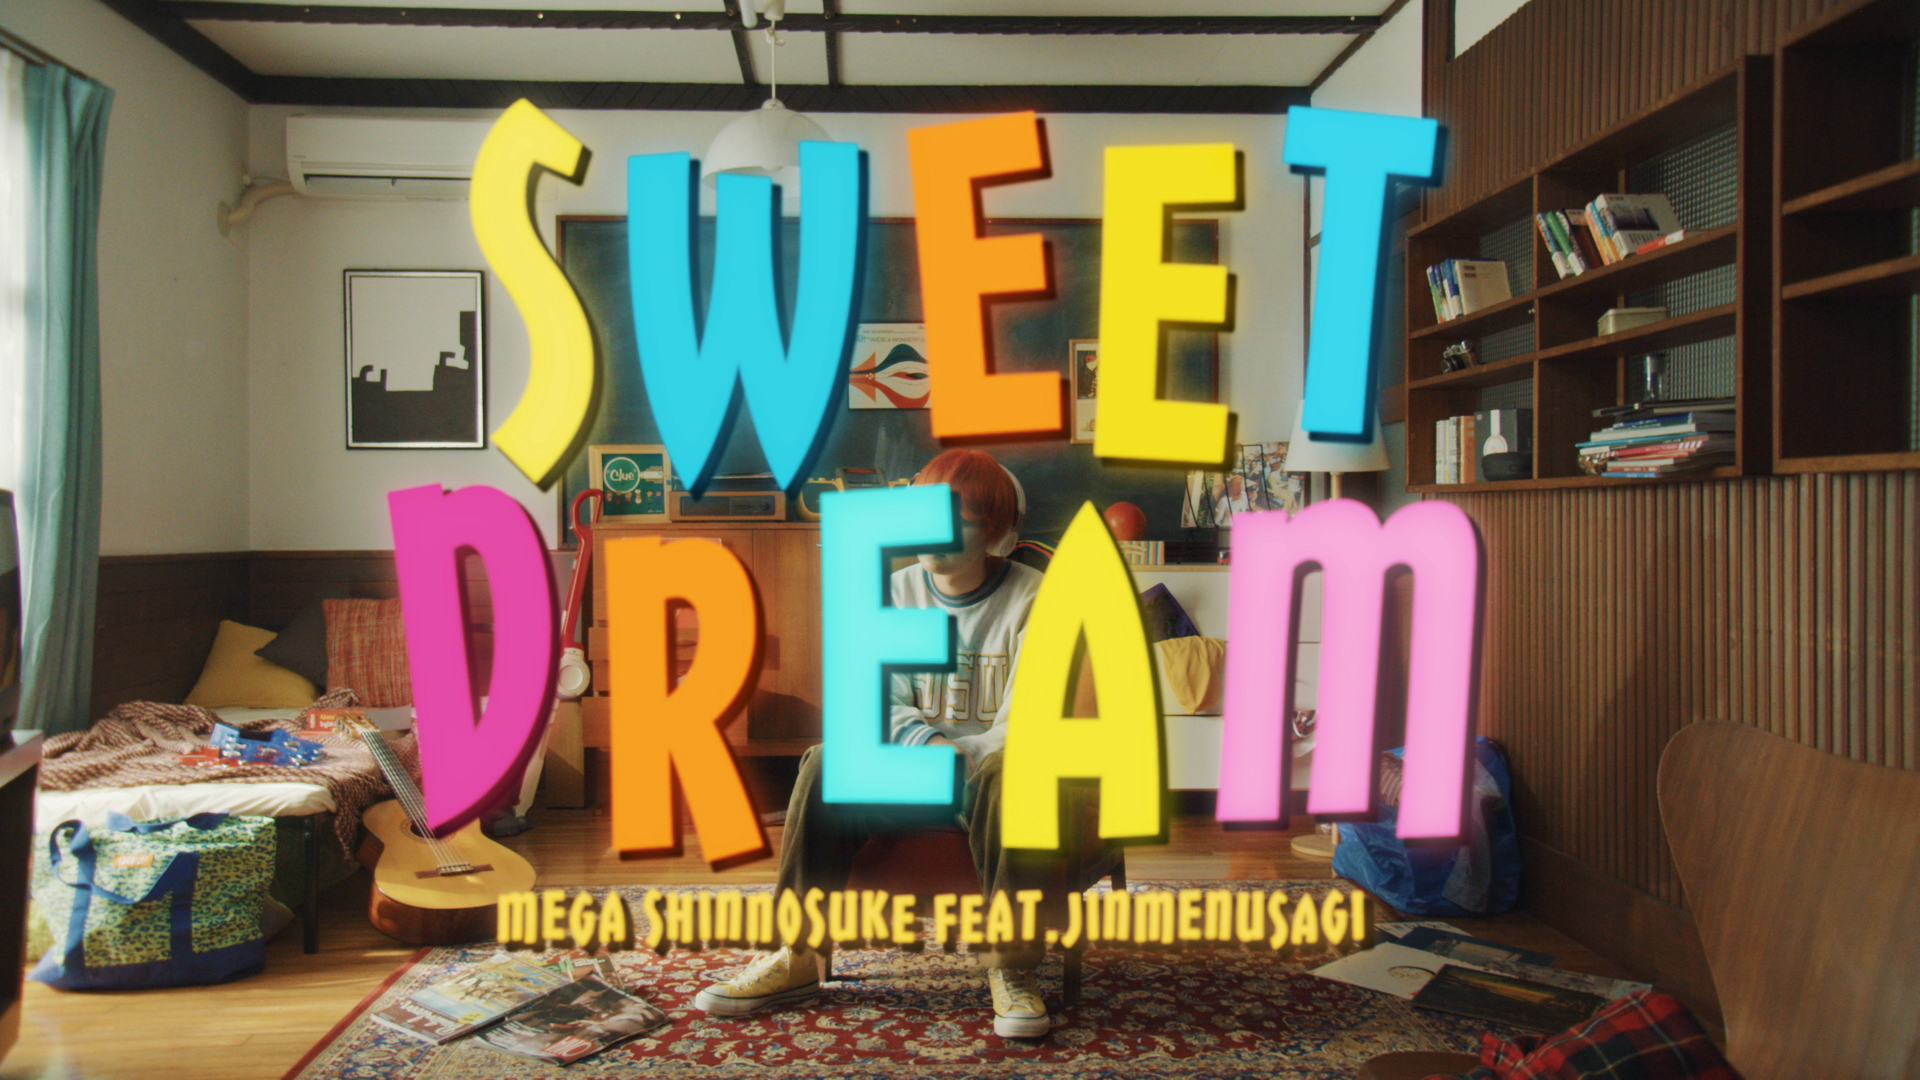 Sweet Dream feat.Jinmenusagi